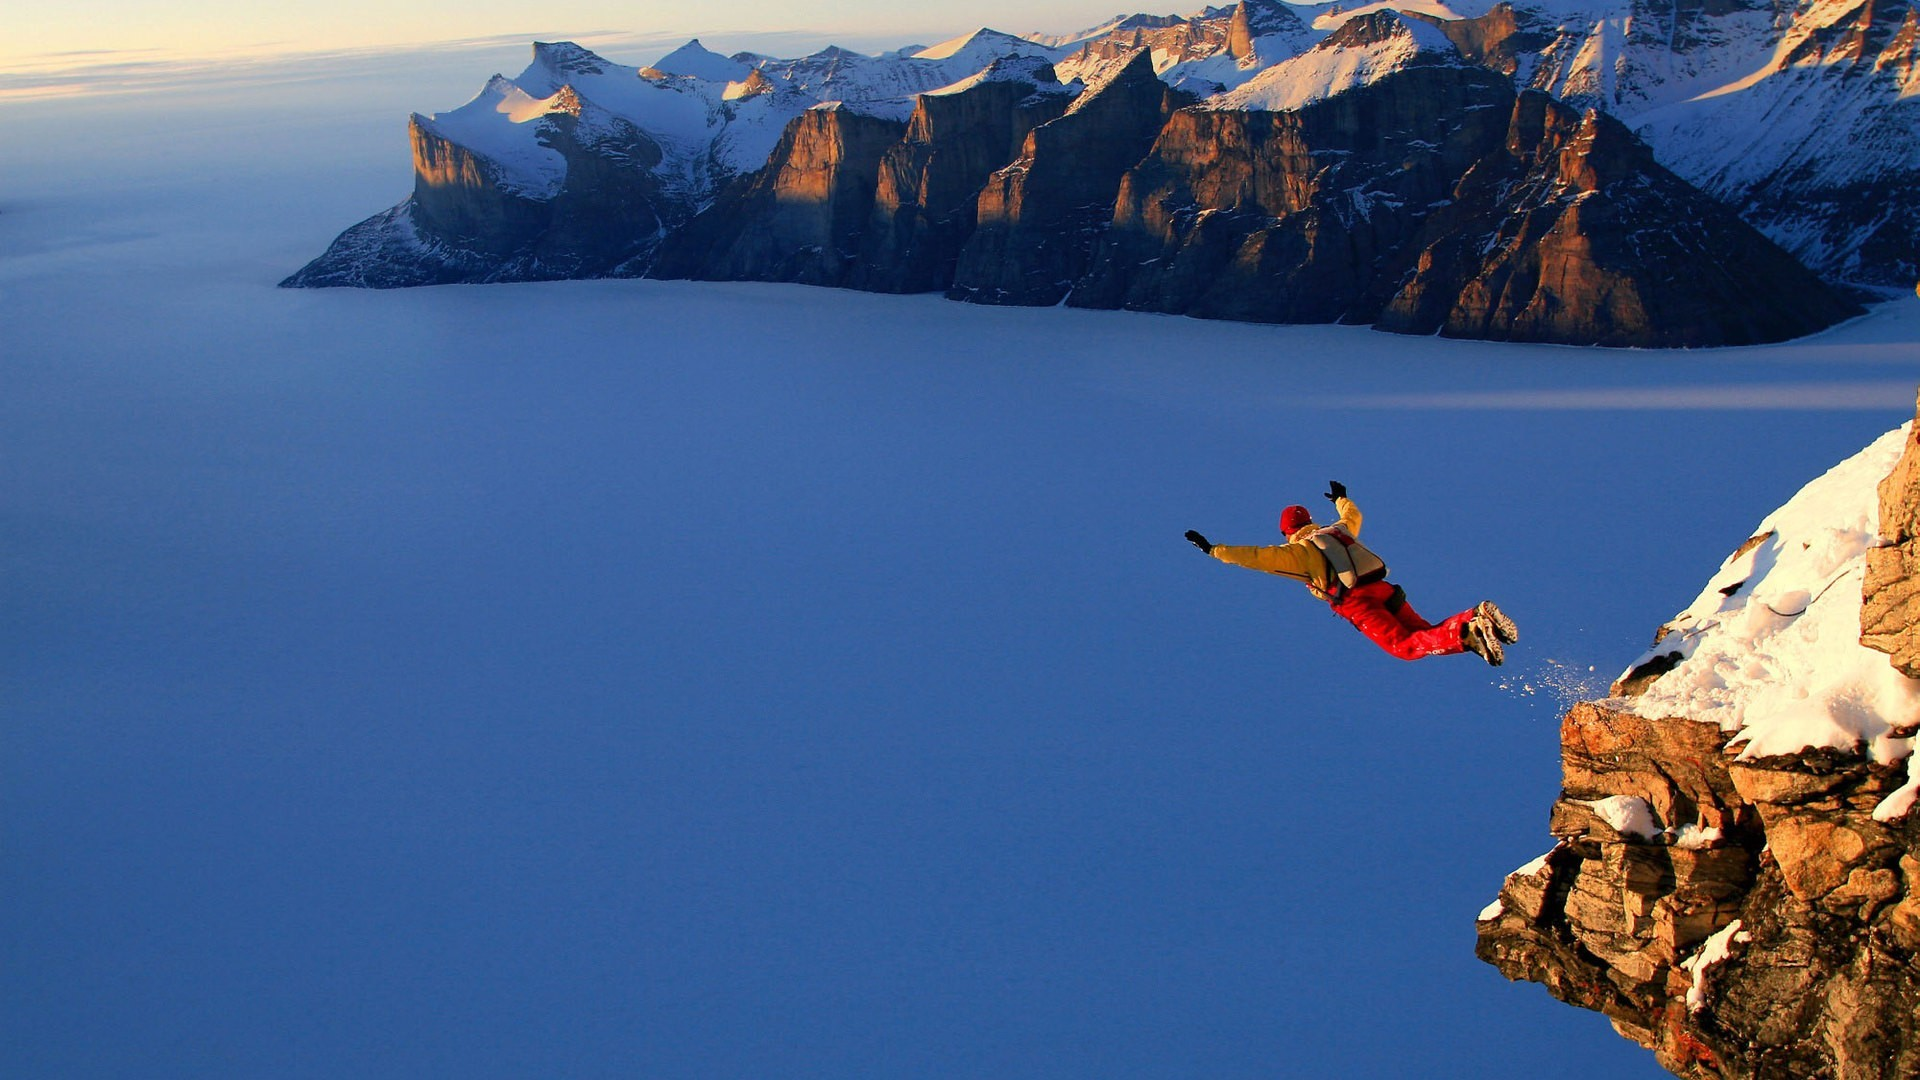 Landscapes snow jumping base HD Wallpaper